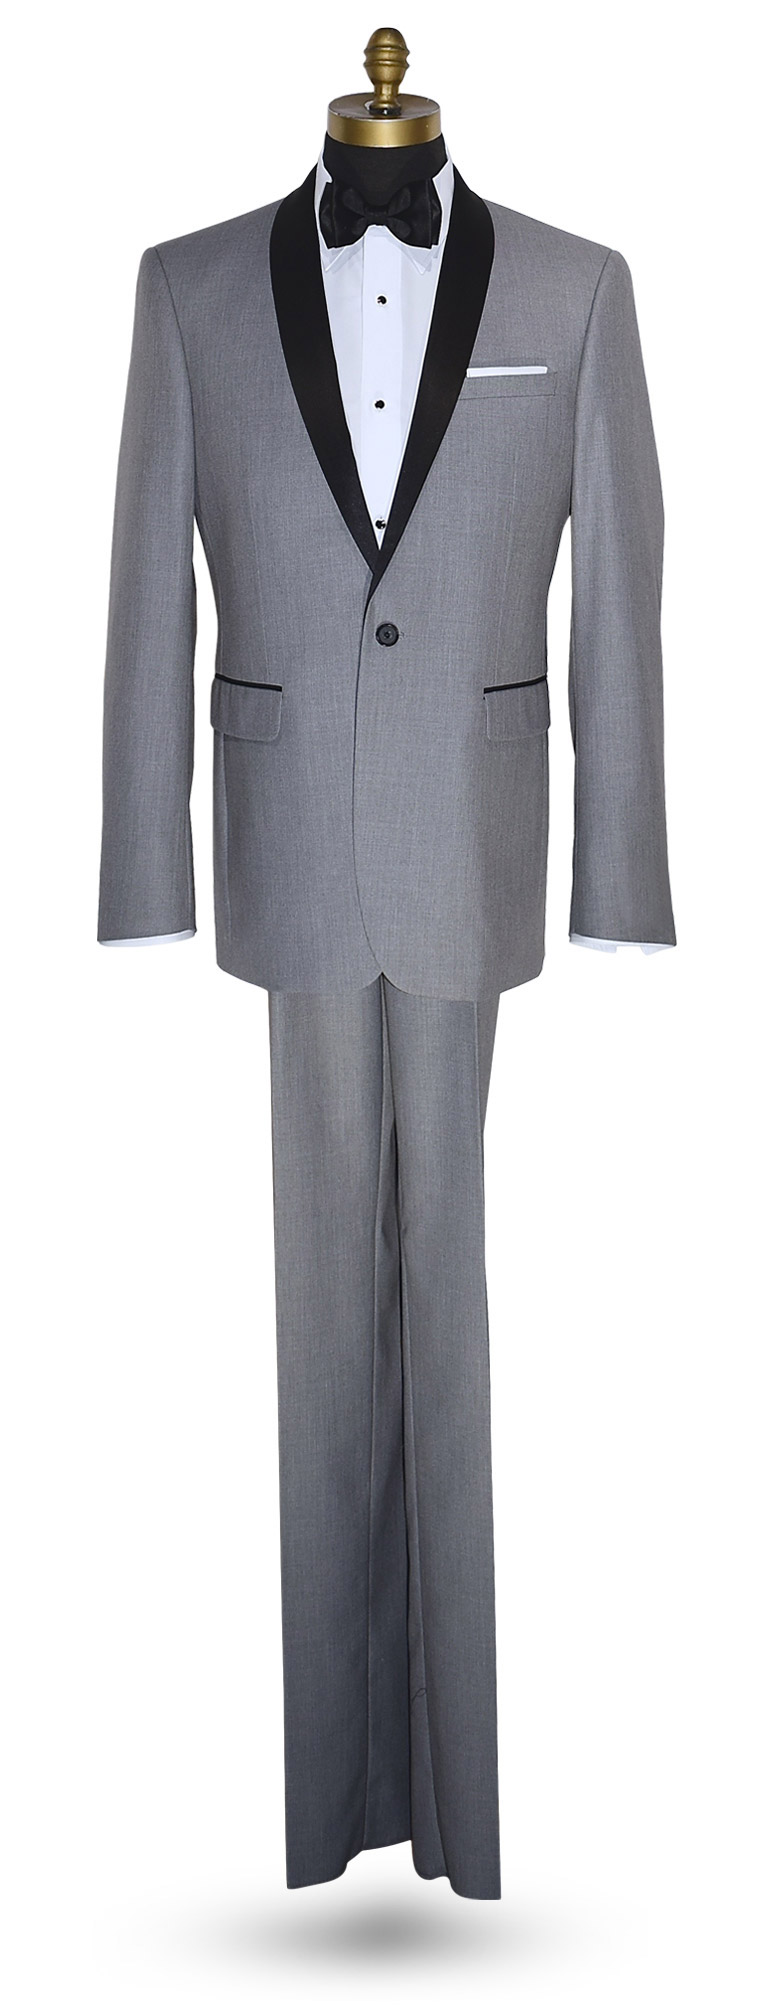 ULTRA SLIM LIGHT GRAY TUXEDO SET - SHAWL COLLAR